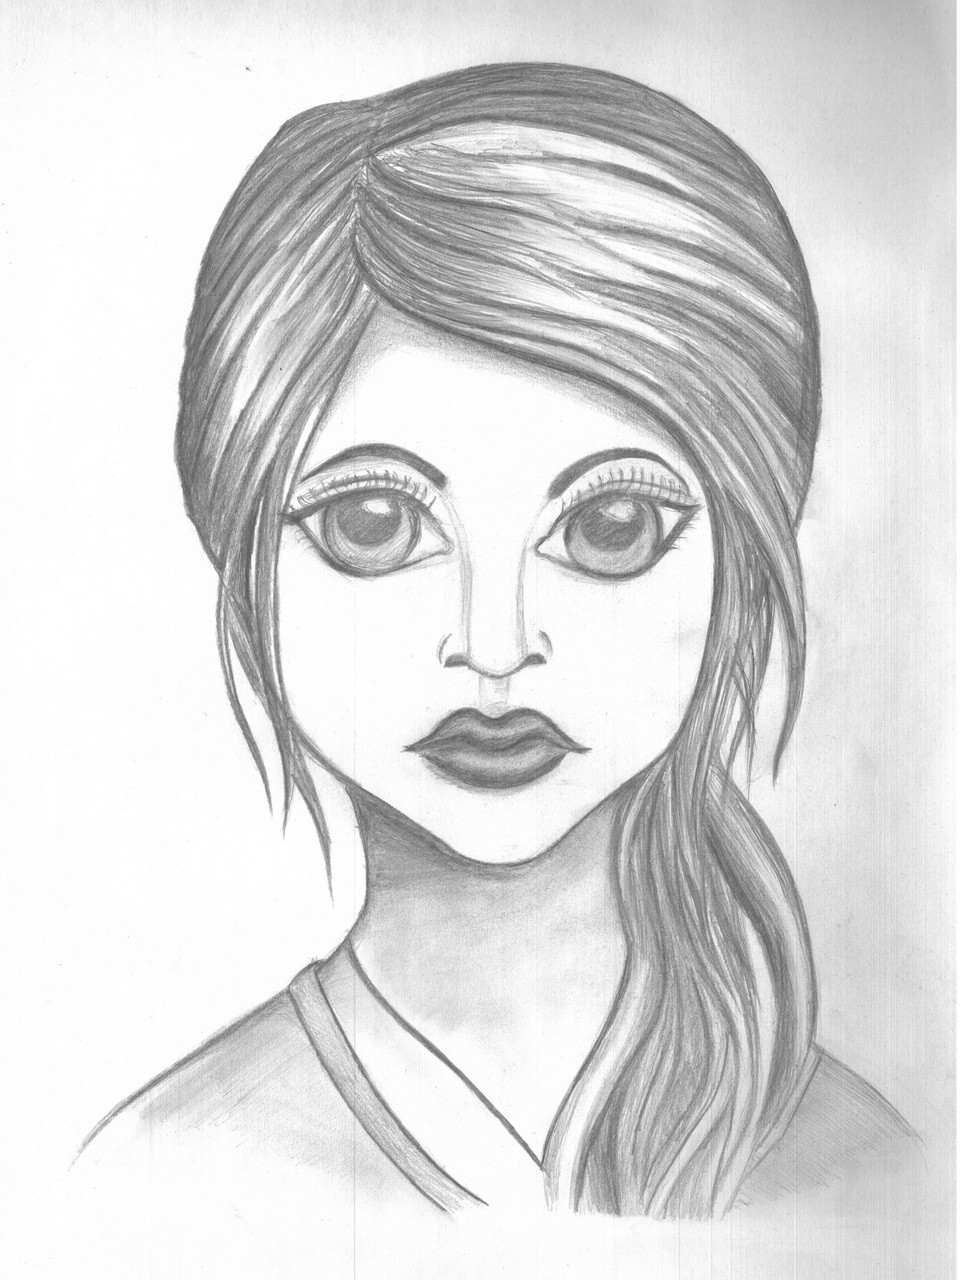 Eyes love beautiful girl sketch pencilbeautiful eyesart 1926 15988